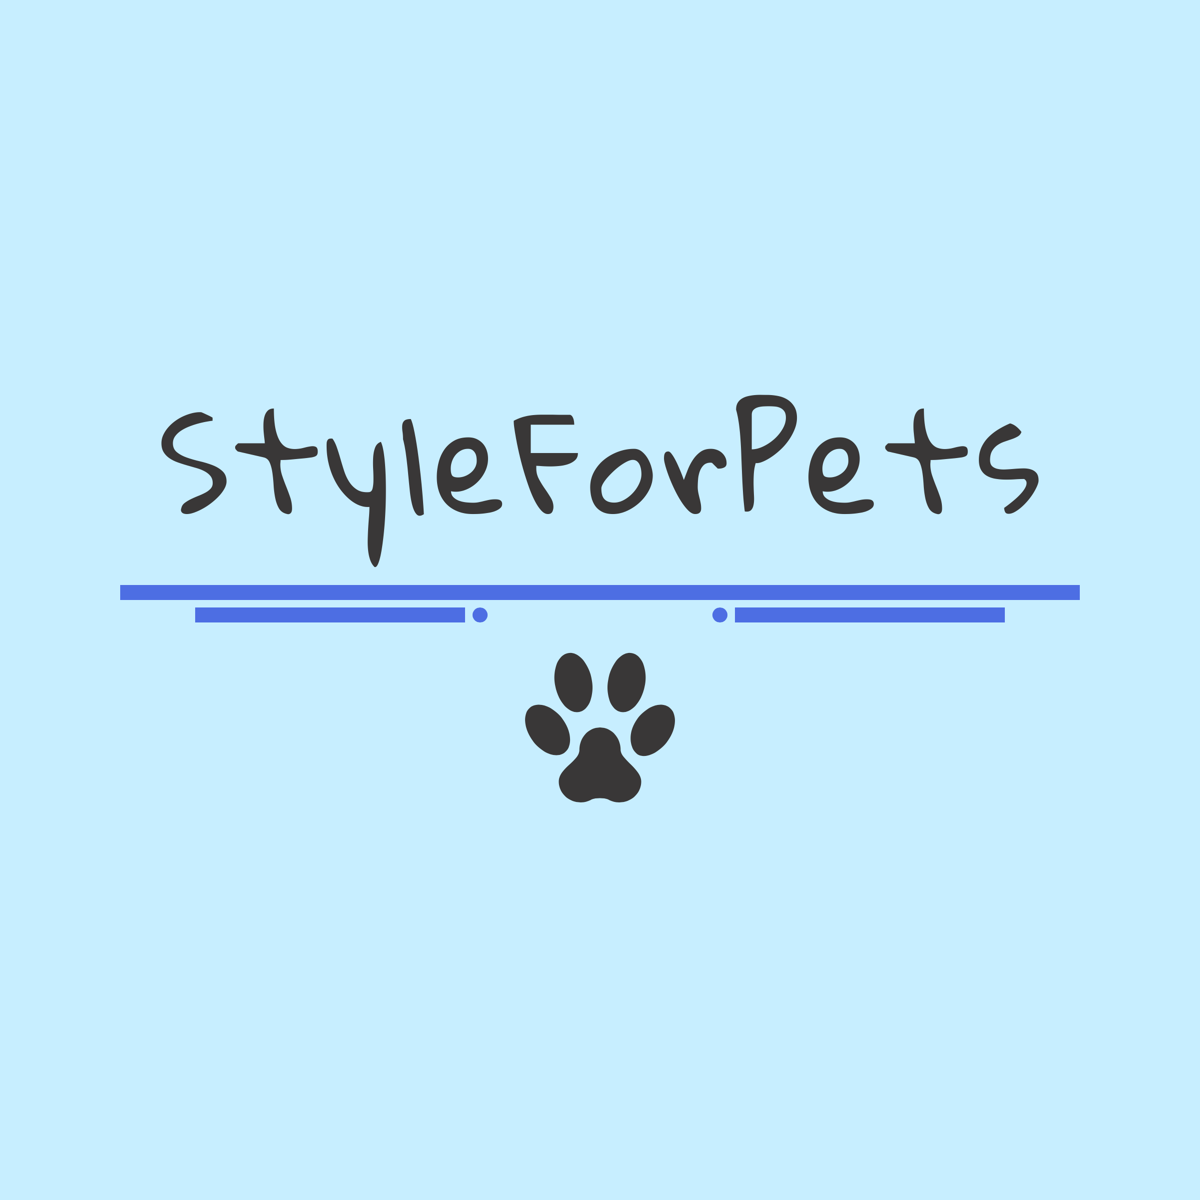 Style for Pet's Mission Statement